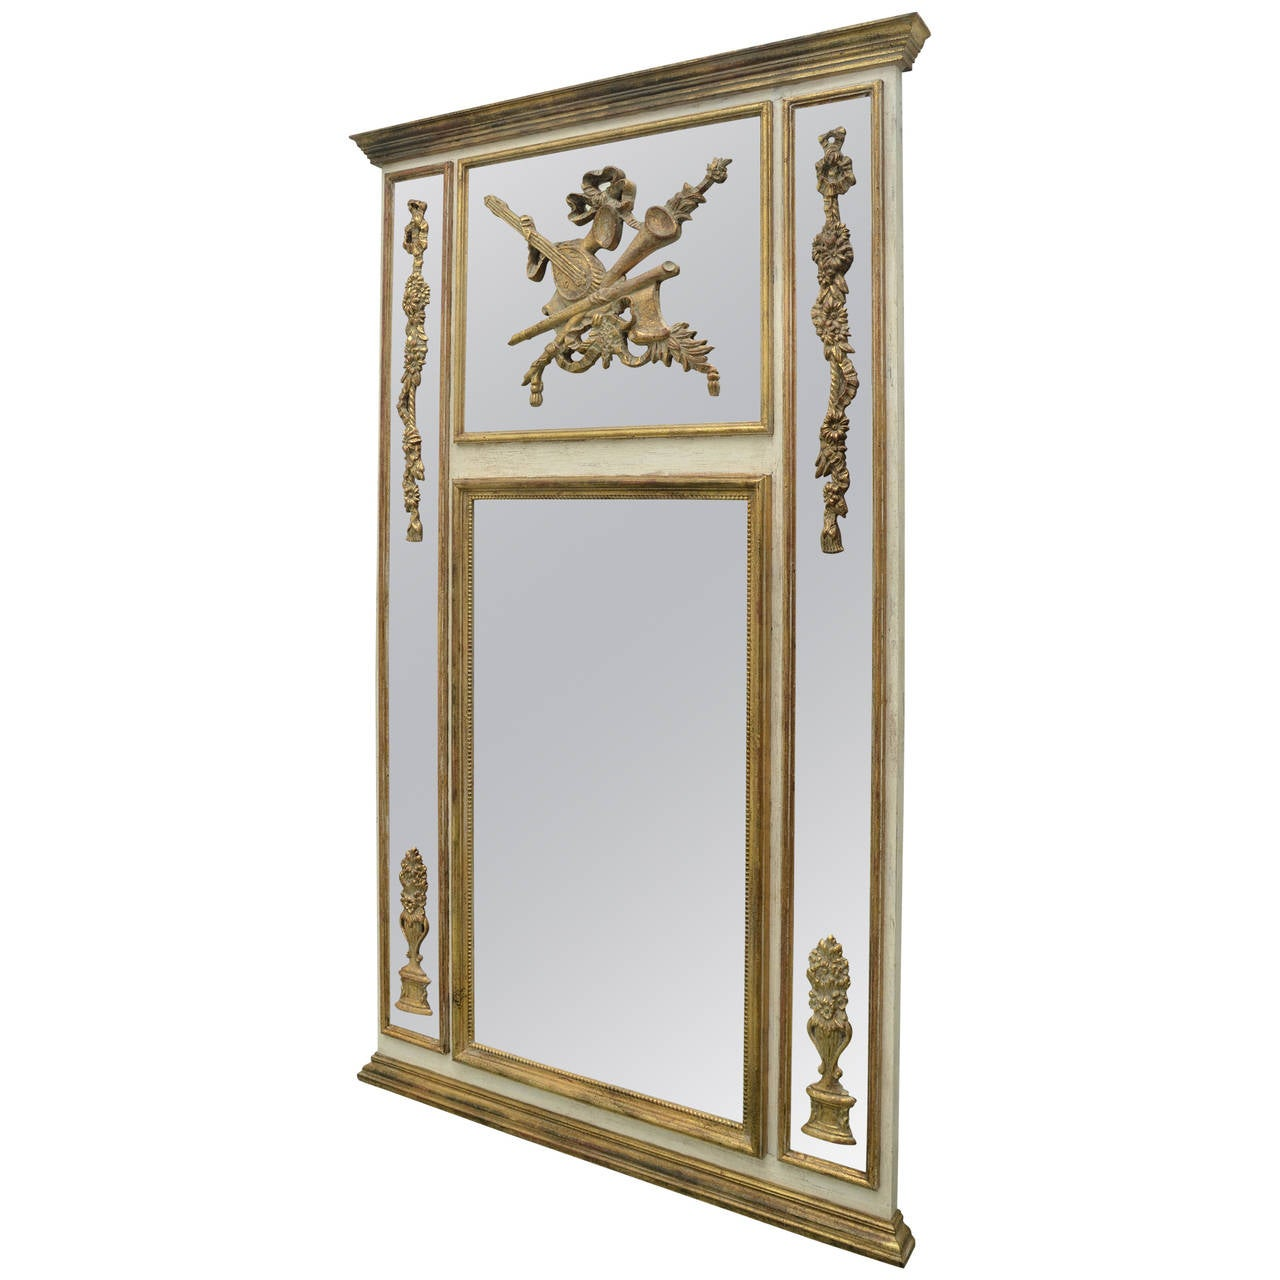 20th century large gold gilt trumeau style italian mirror for Large gold floor mirror